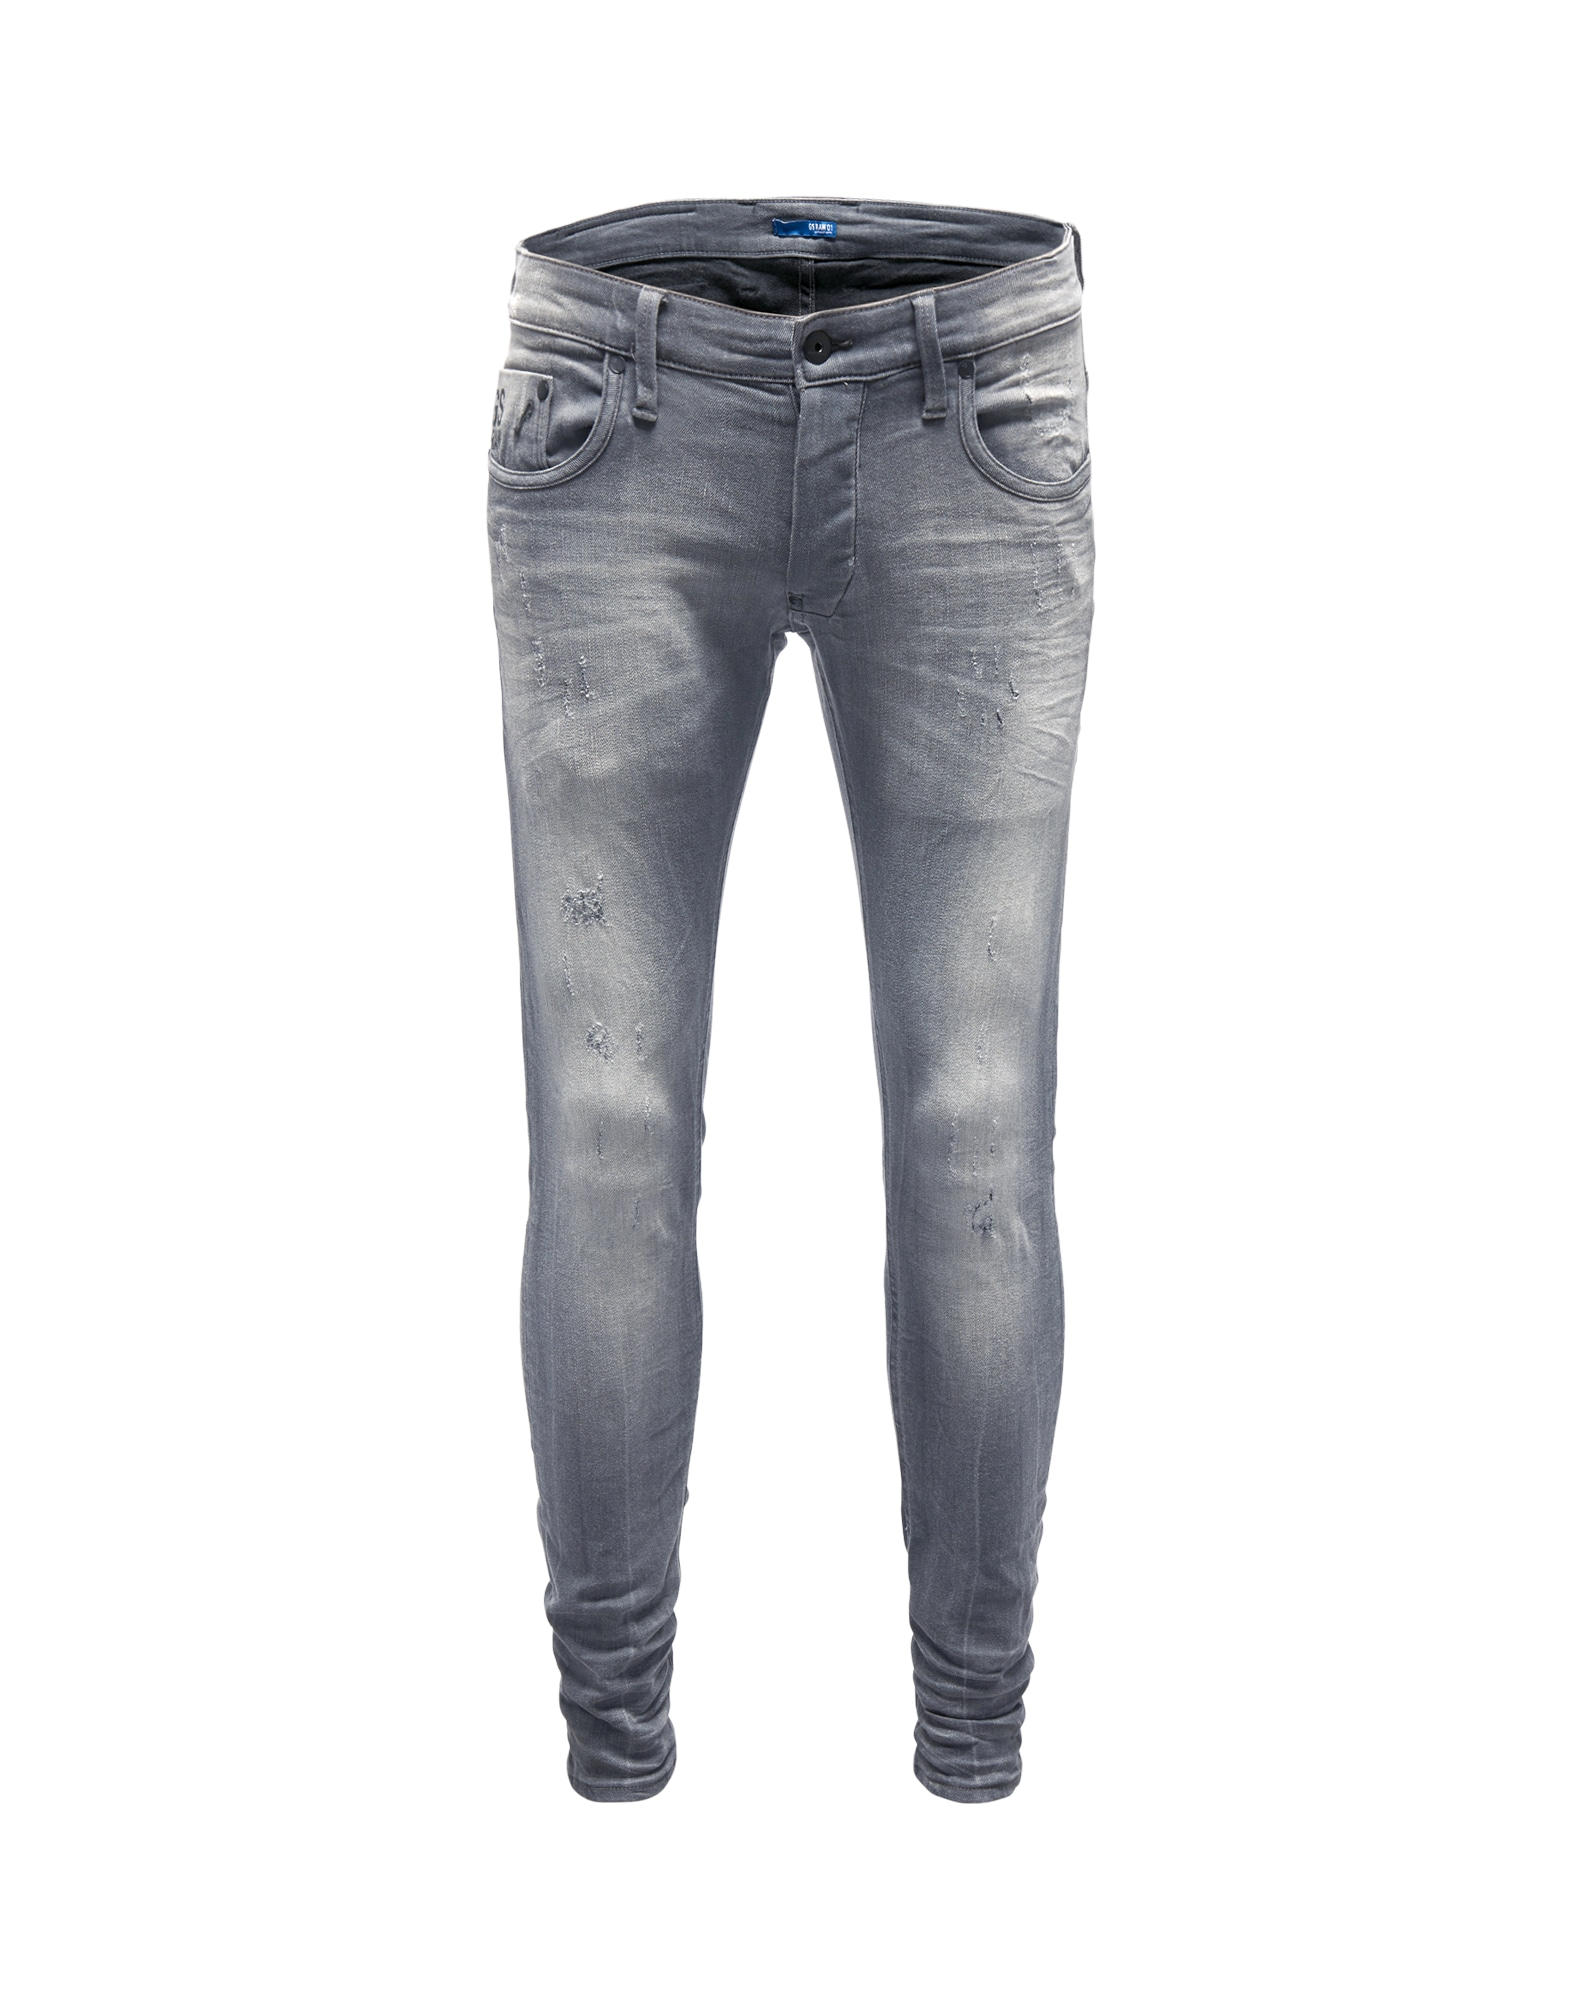 G-STAR RAW Heren Jeans Revend Super Slim grijs